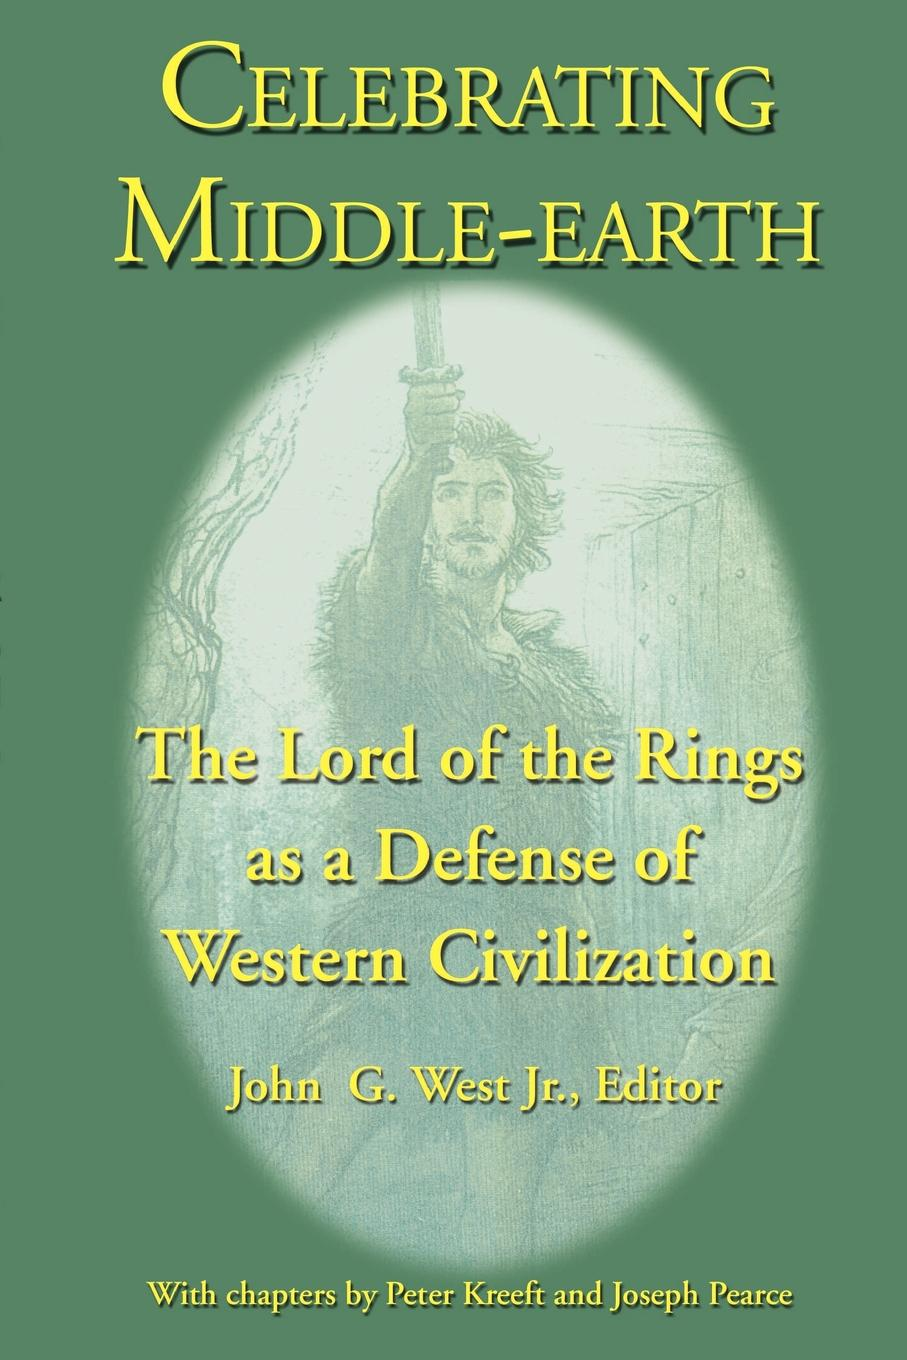 Celebrating Middle-earth. The Lord of the Rings as a Defense of Western Civilization